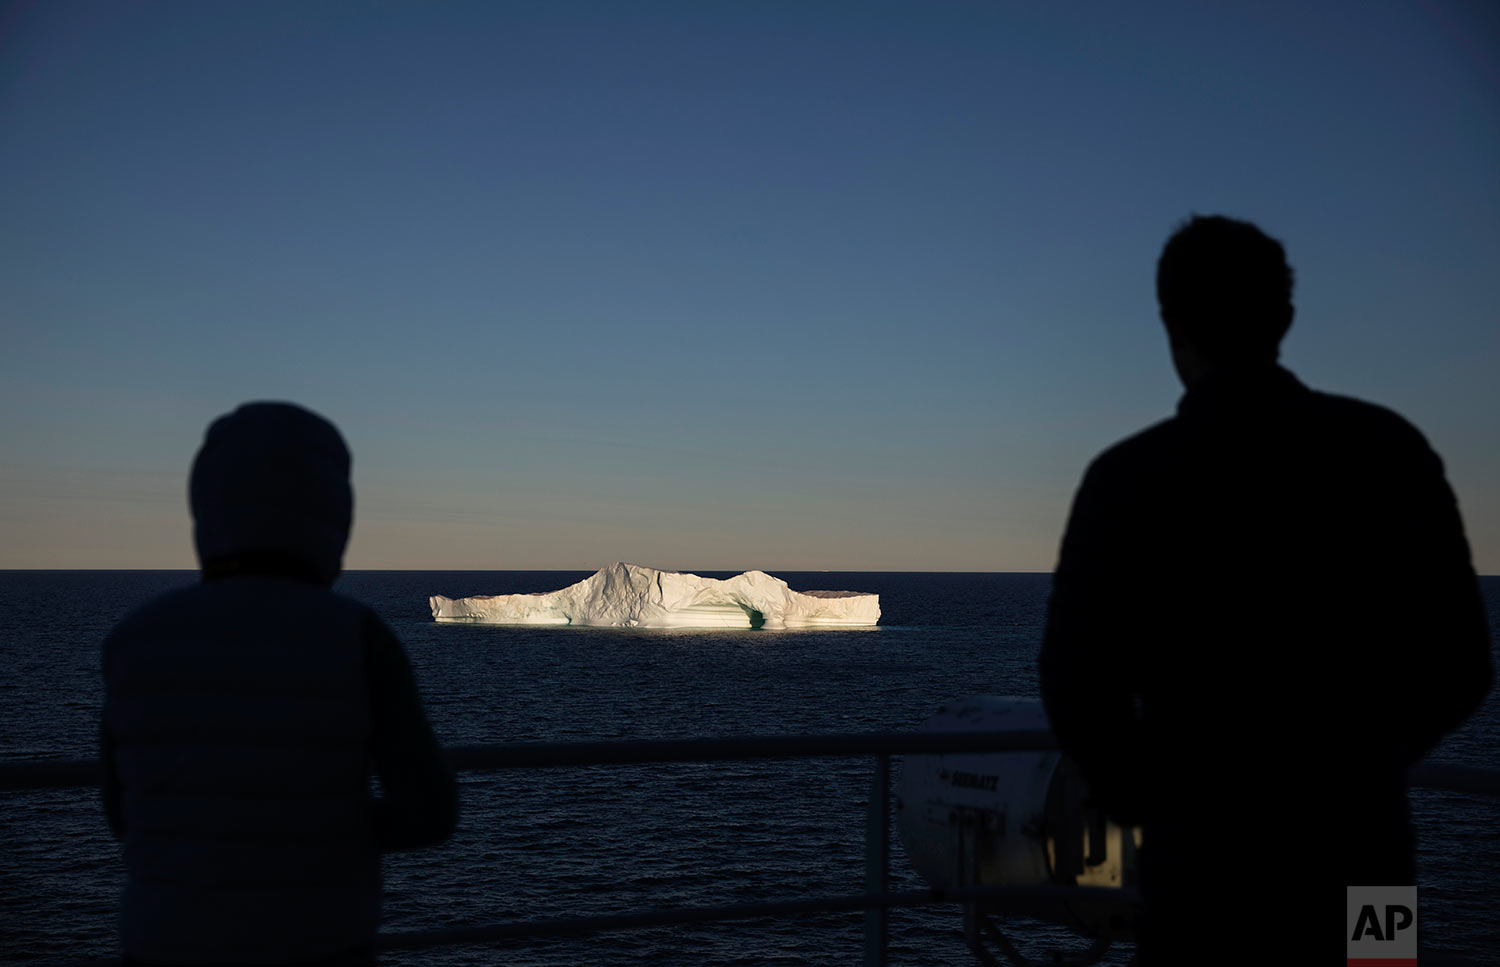 Researchers aboard the Finnish icebreaker MSV Nordica watch while approaching an iceberg floating in Baffin Bay in the Canadian Arctic Archipelago, Tuesday, July 25, 2017.  (AP Photo/David Goldman)